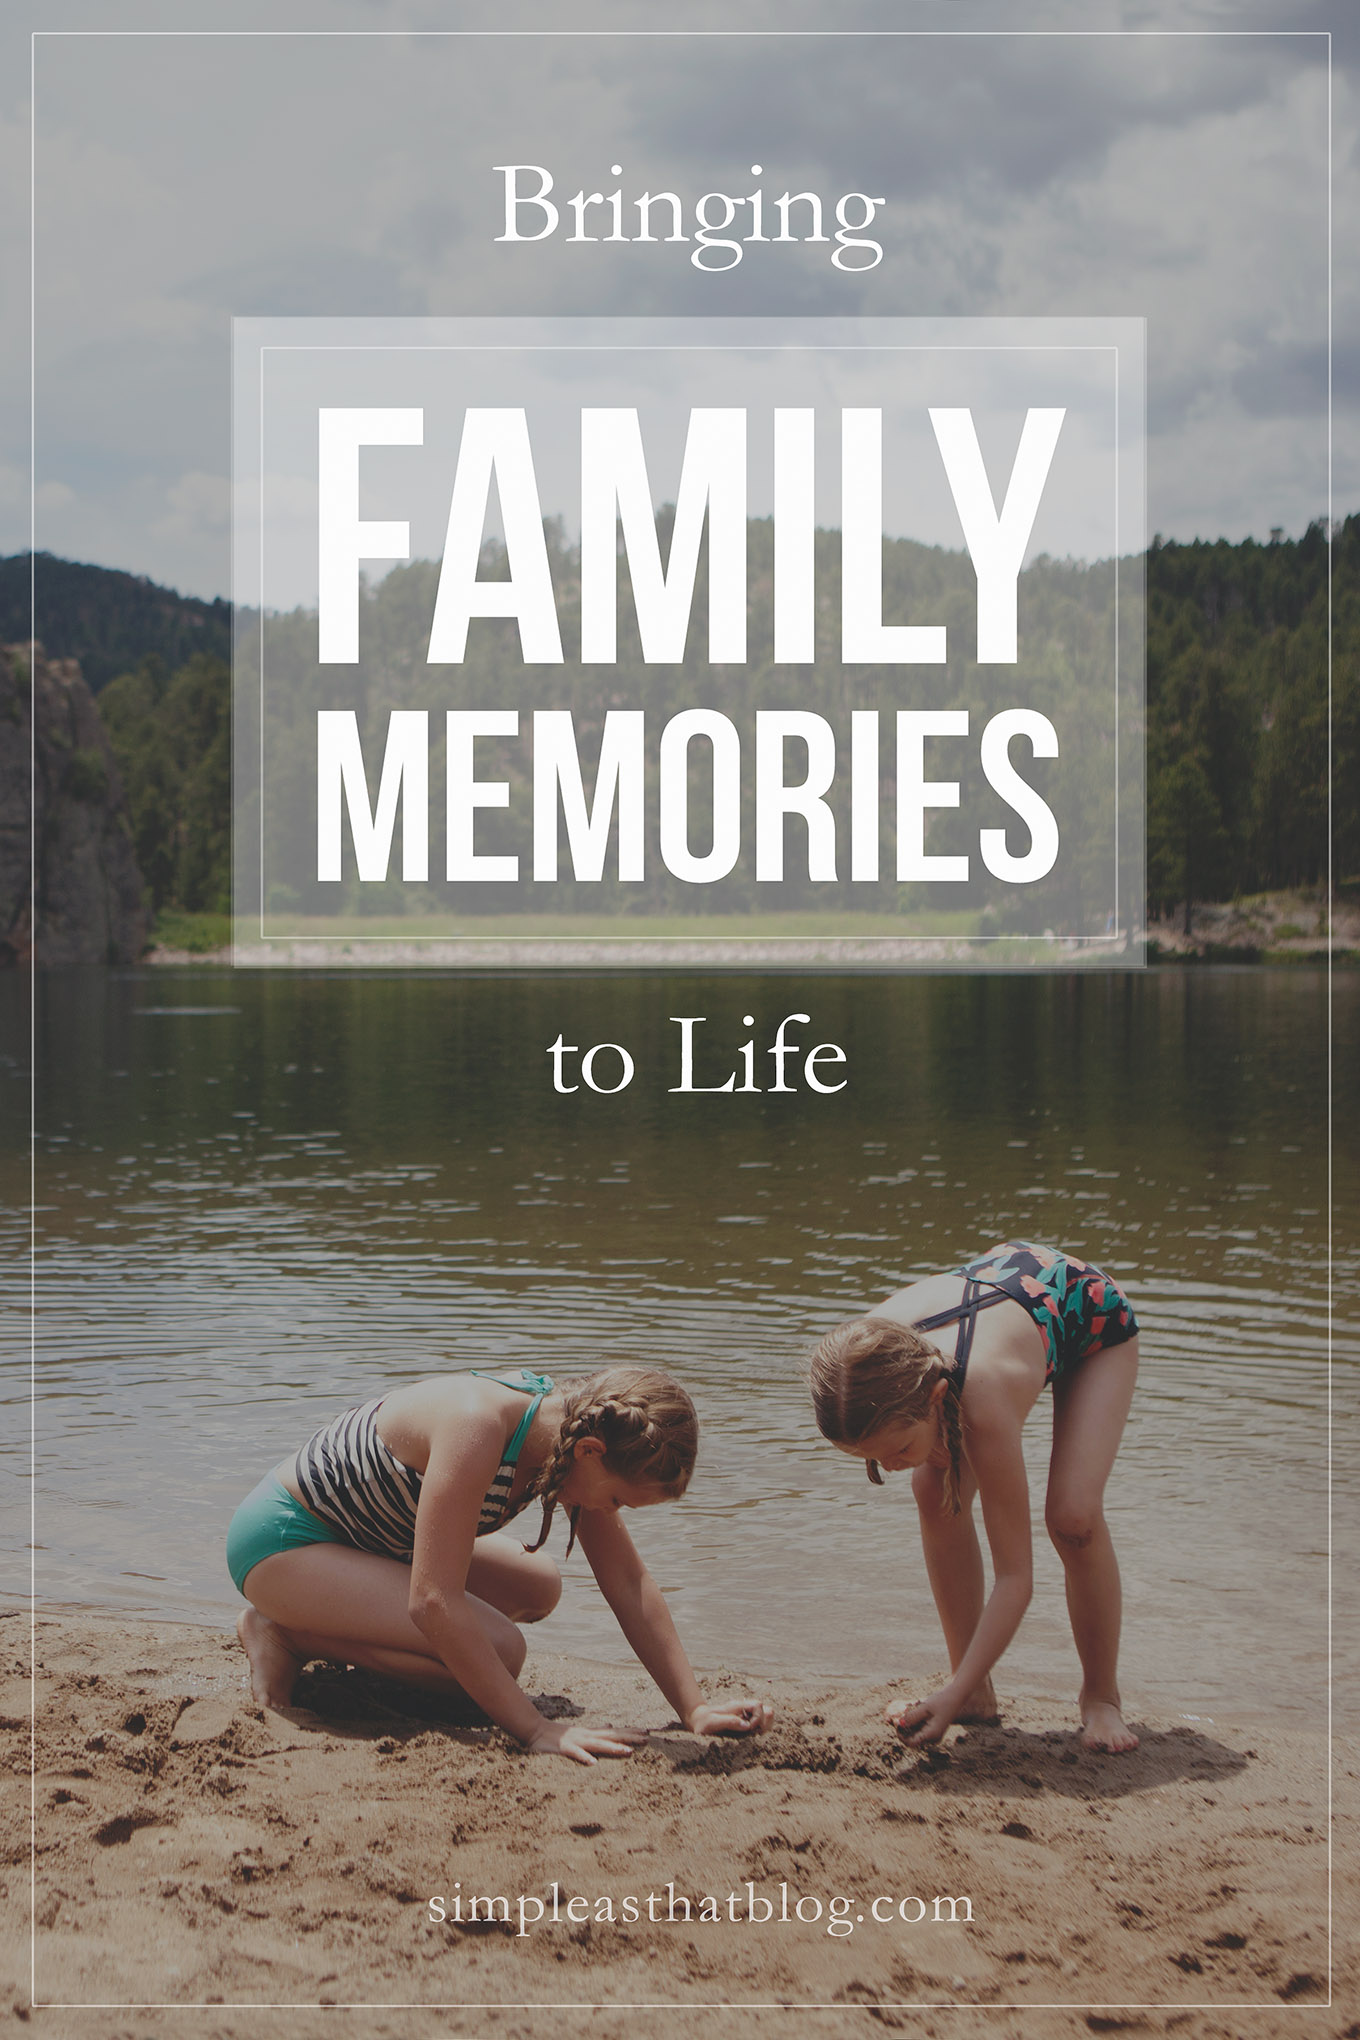 If your family memories were important enough for you to record them, why not take the next step? Free them from your phone or hard drive, and share the stories that are waiting to be told!